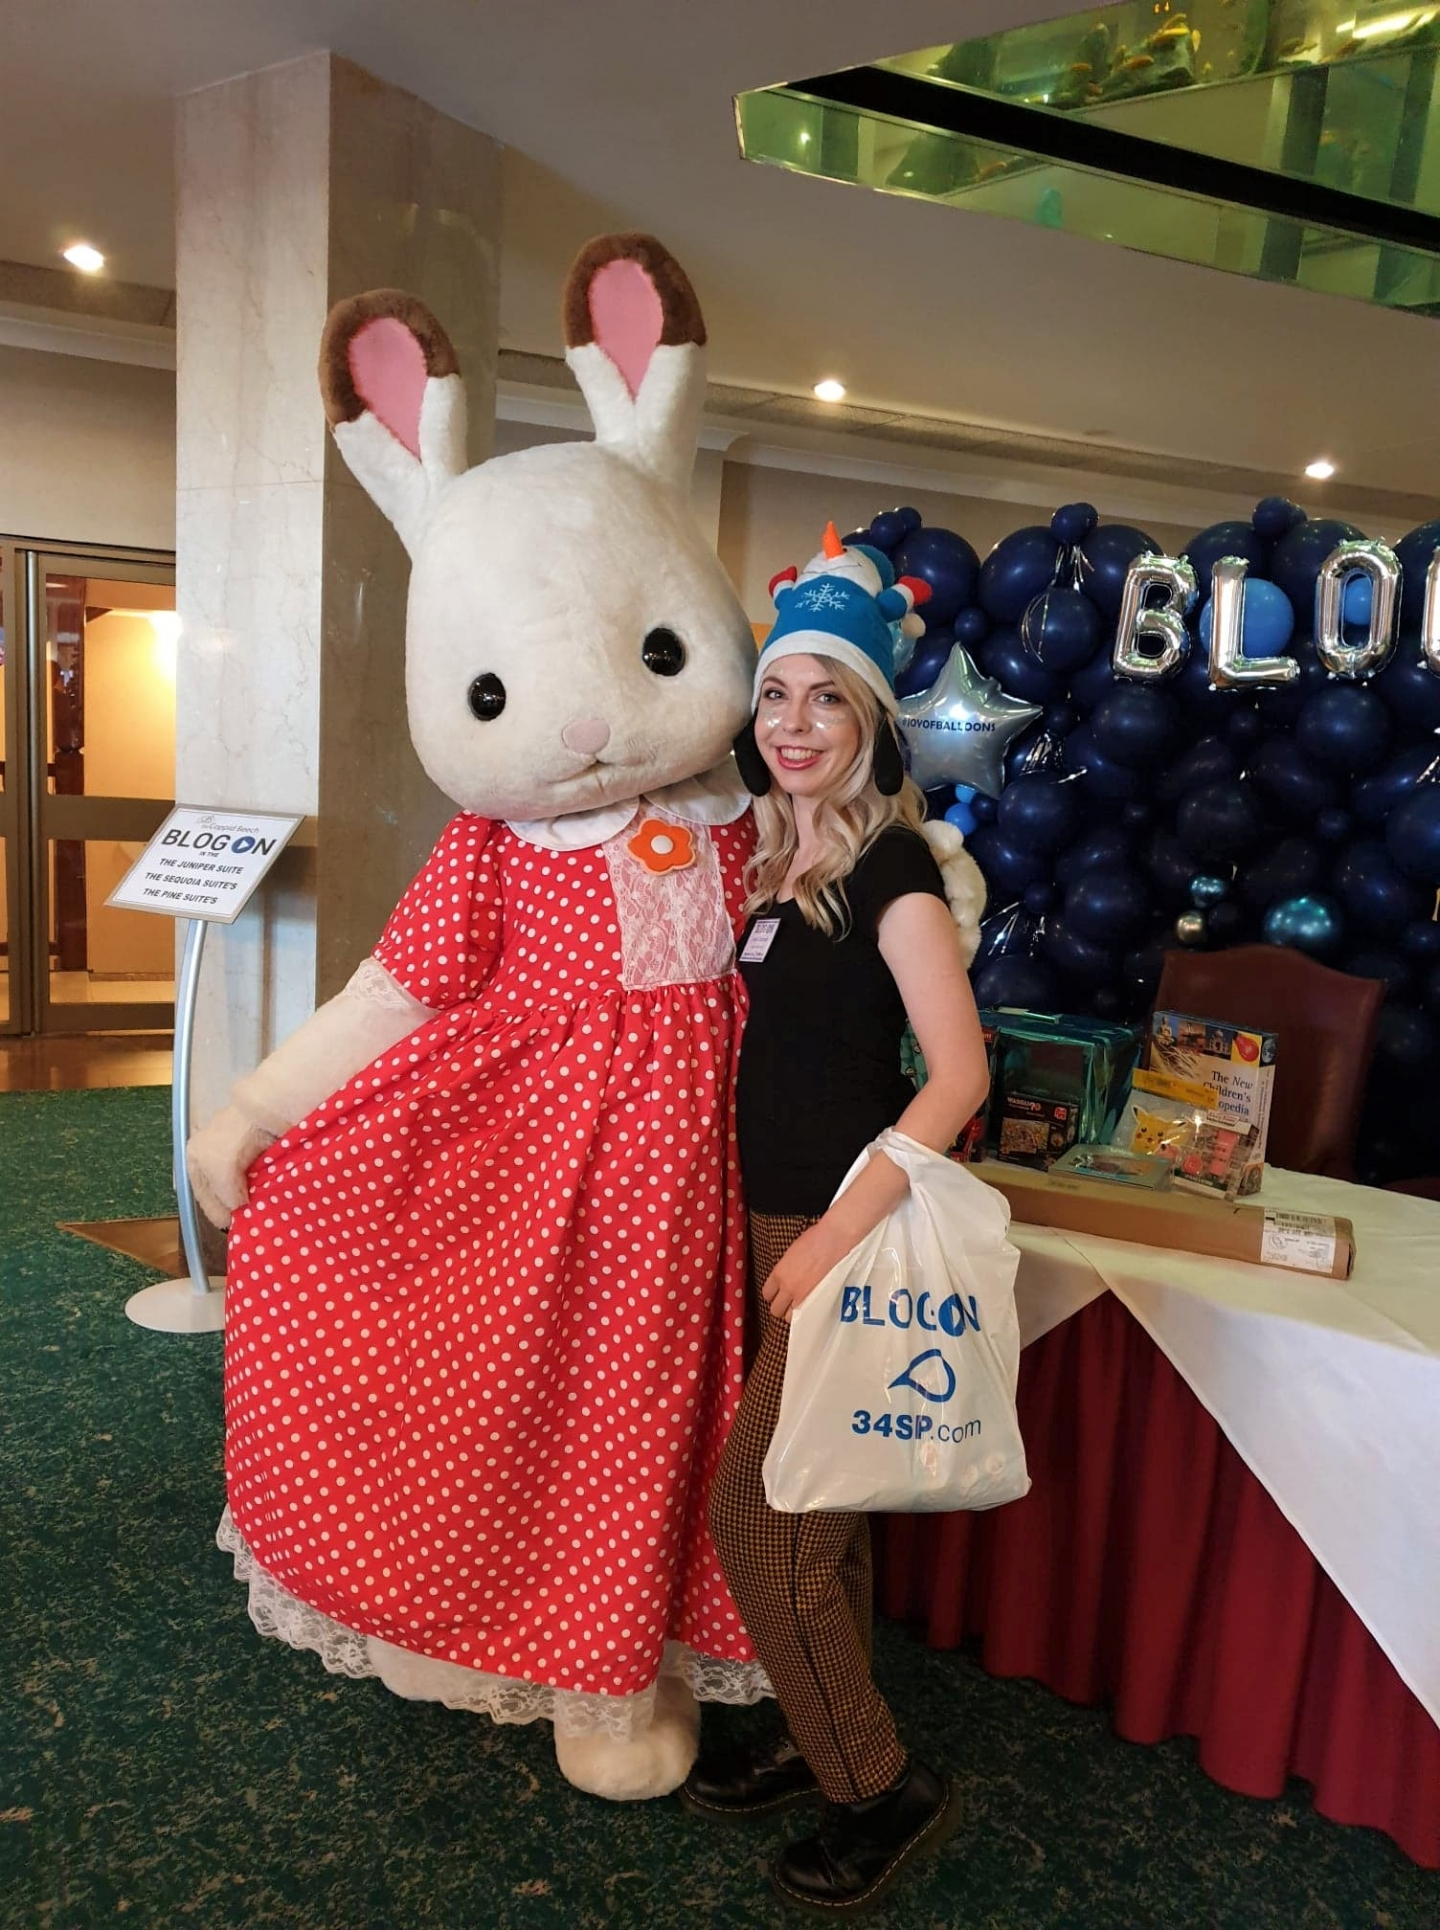 Meeting Sylvanian Families rabbit at BlogOn